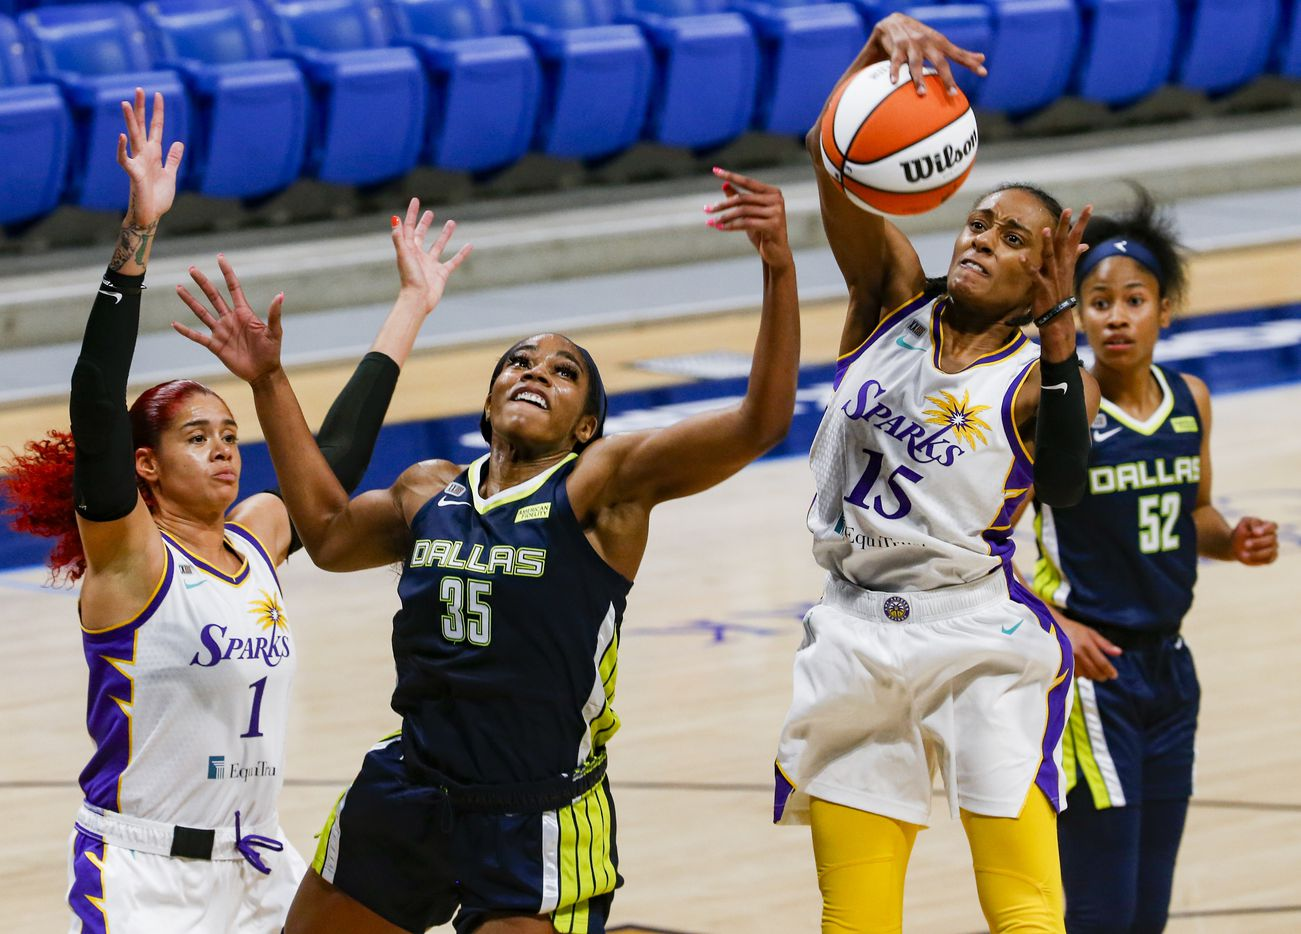 Dallas Wings forward/center Charli Collier (35) tries to get the ball from Los Angeles Sparks guard Brittney Sykes (15) during the first quarter at College Park Center on Tuesday, June 1, 2021, in Arlington. (Juan Figueroa/The Dallas Morning News)